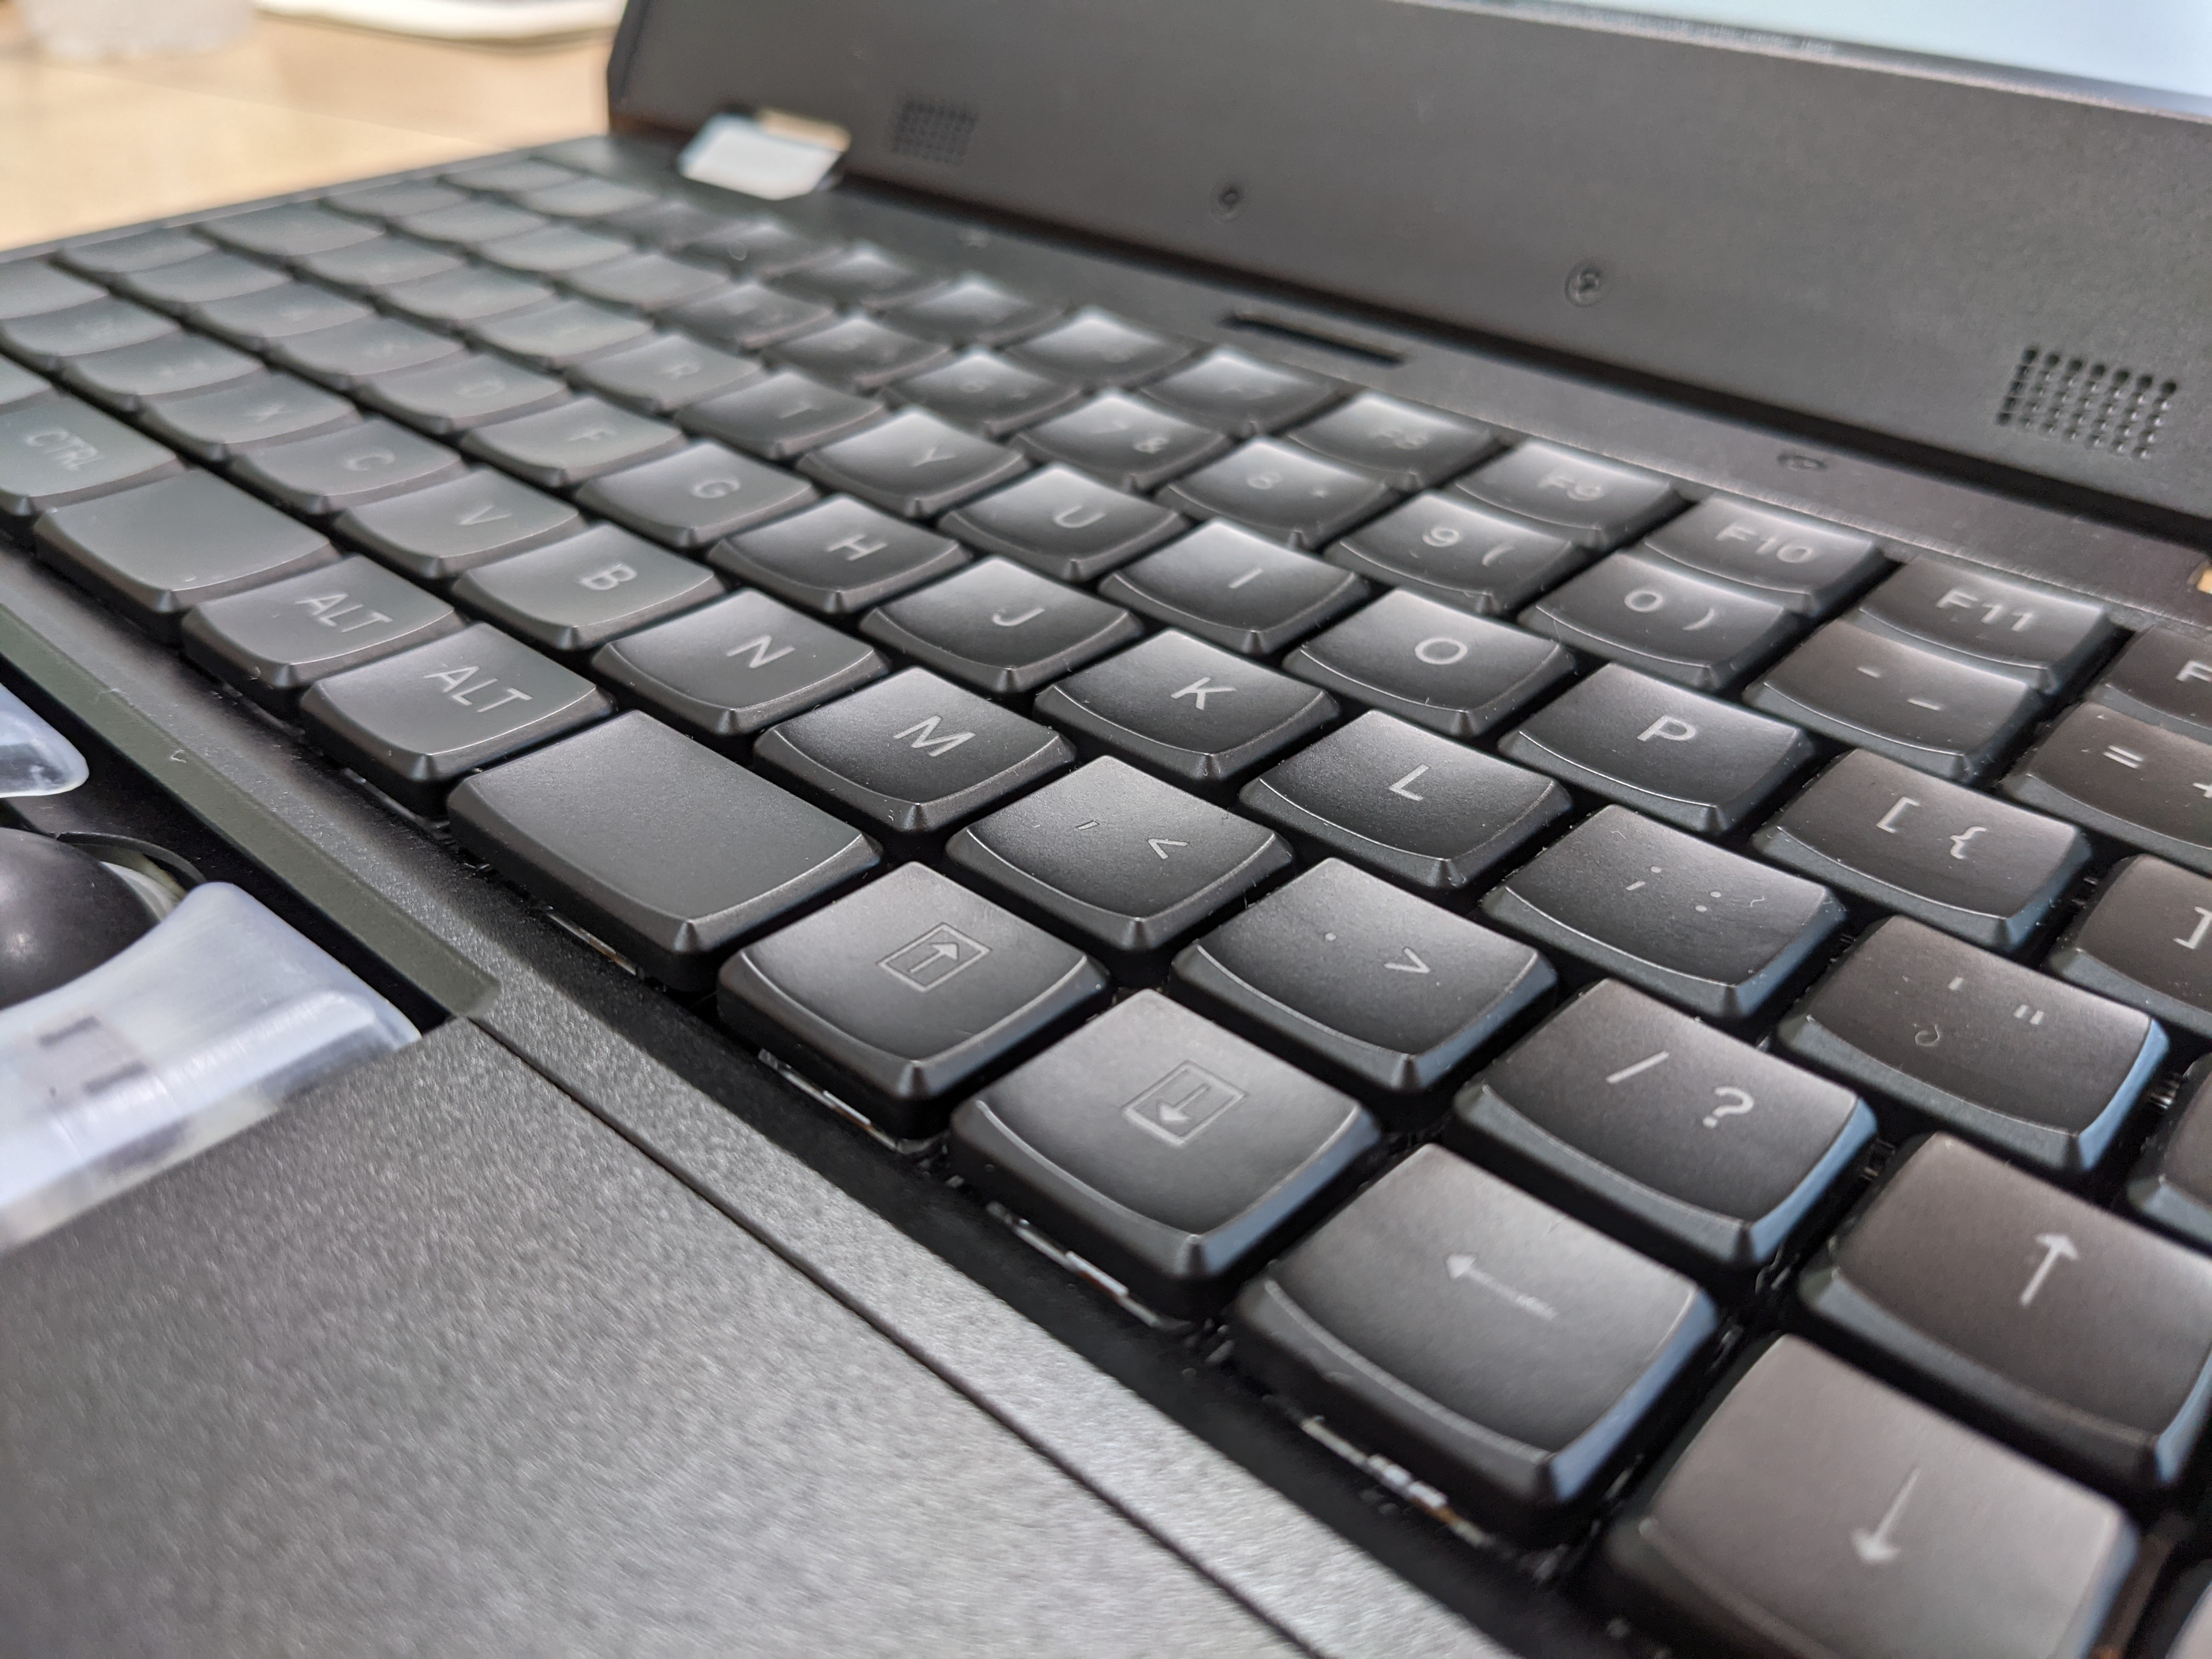 a laptop keyboard with key caps which have a deep depression in the center